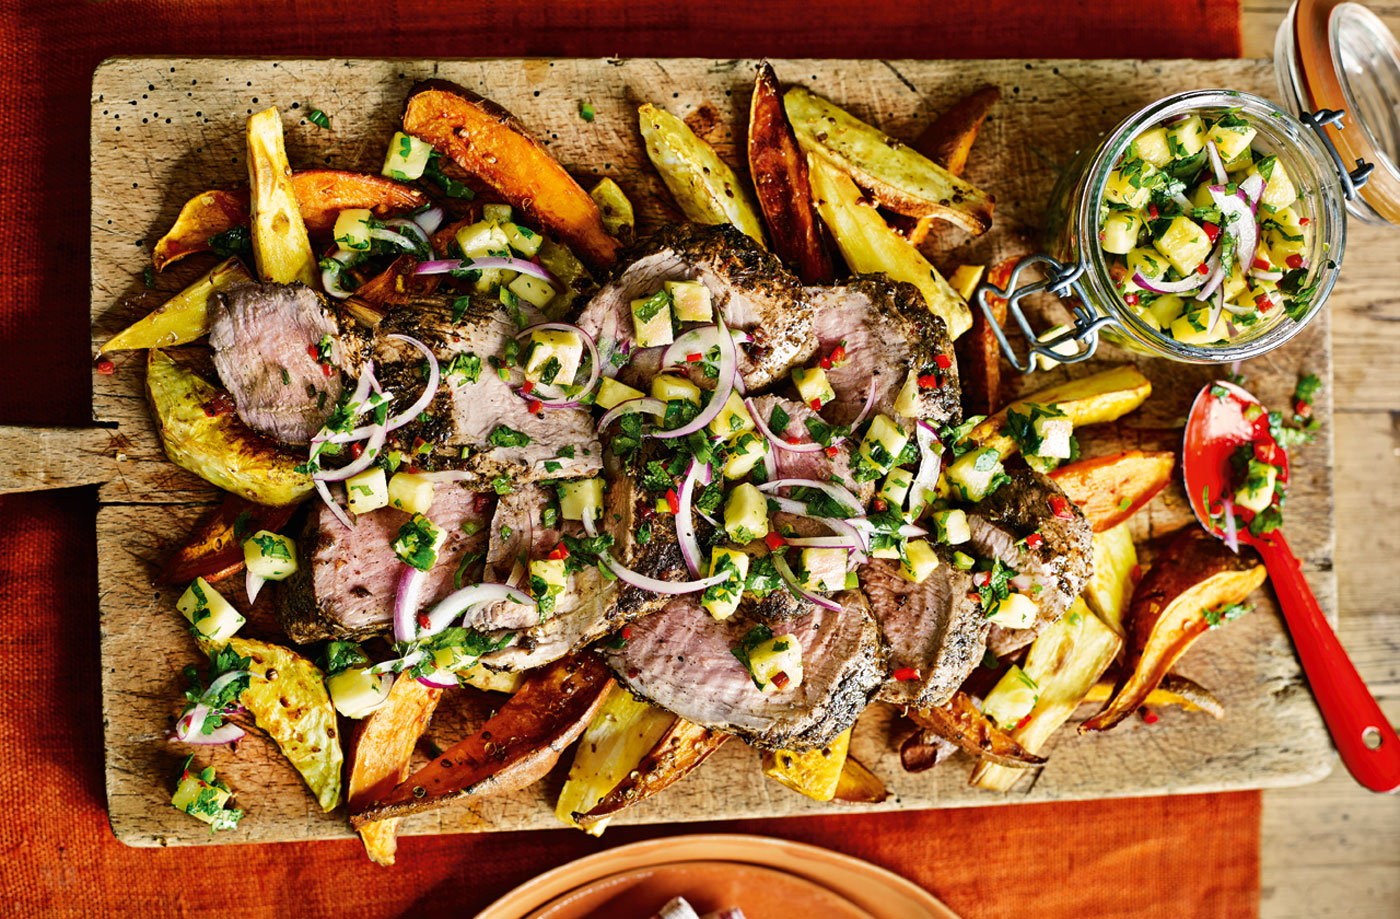 Jerk-spiced pork with pineapple salsa recipe